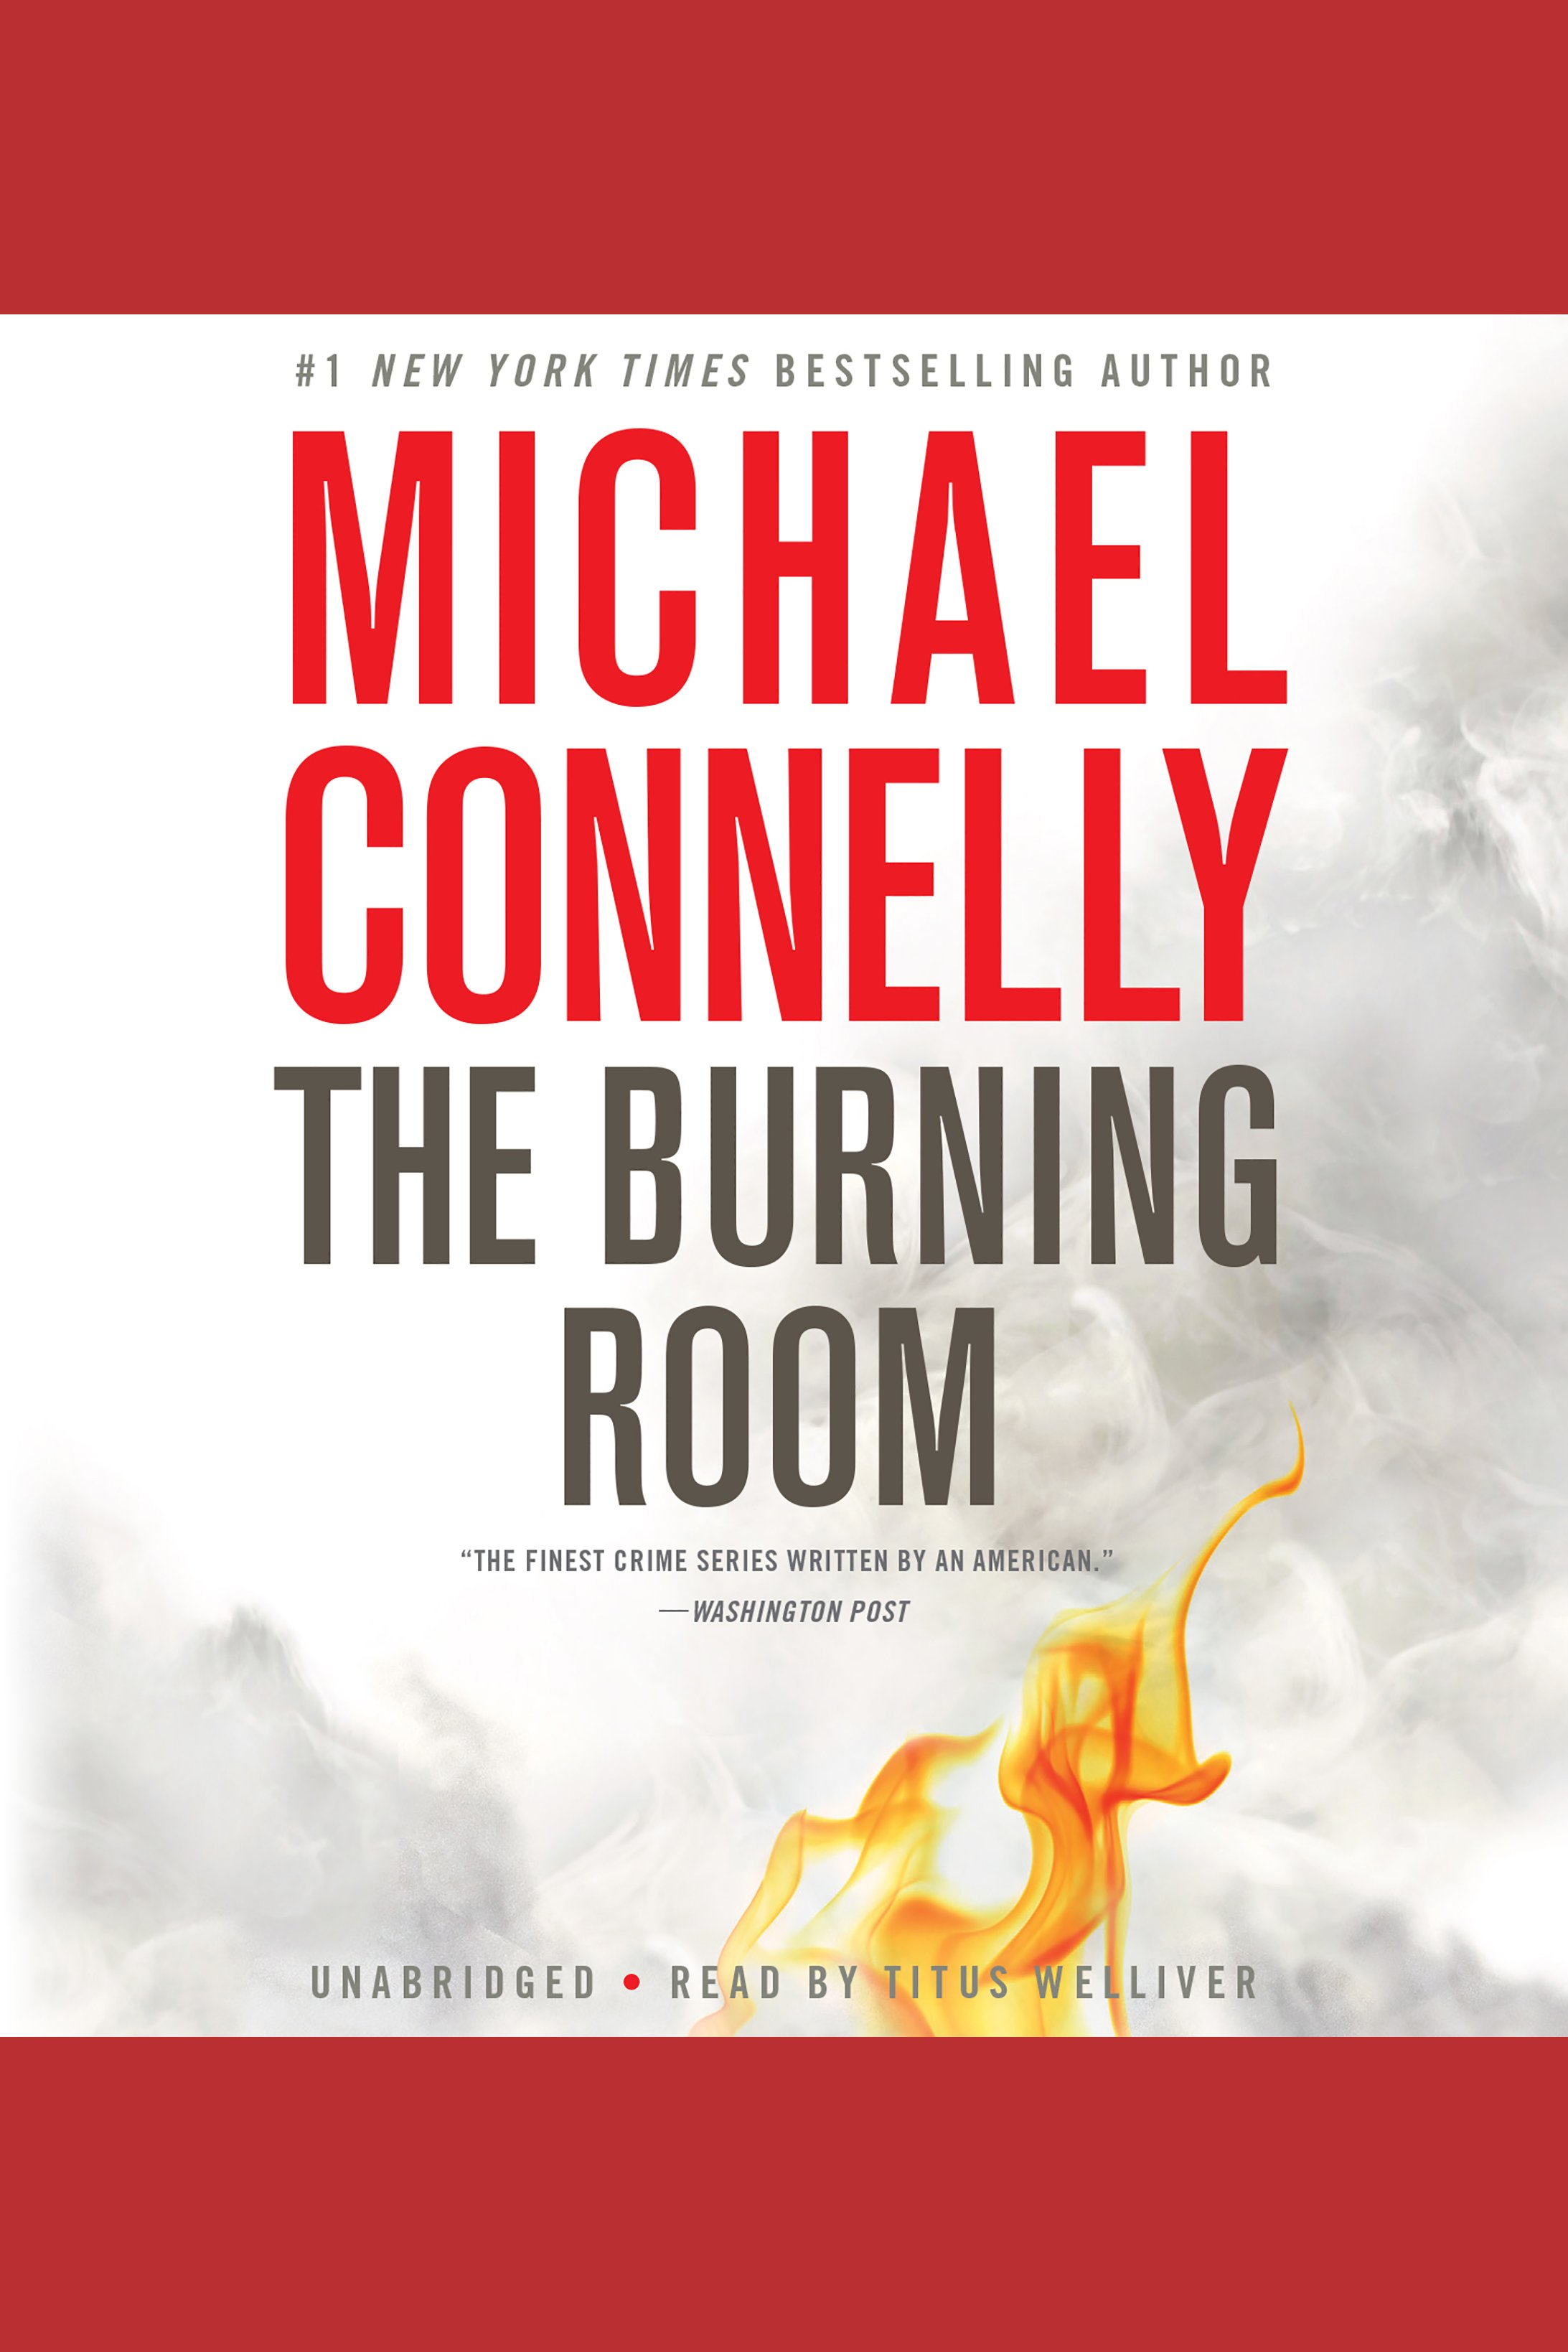 The burning room cover image